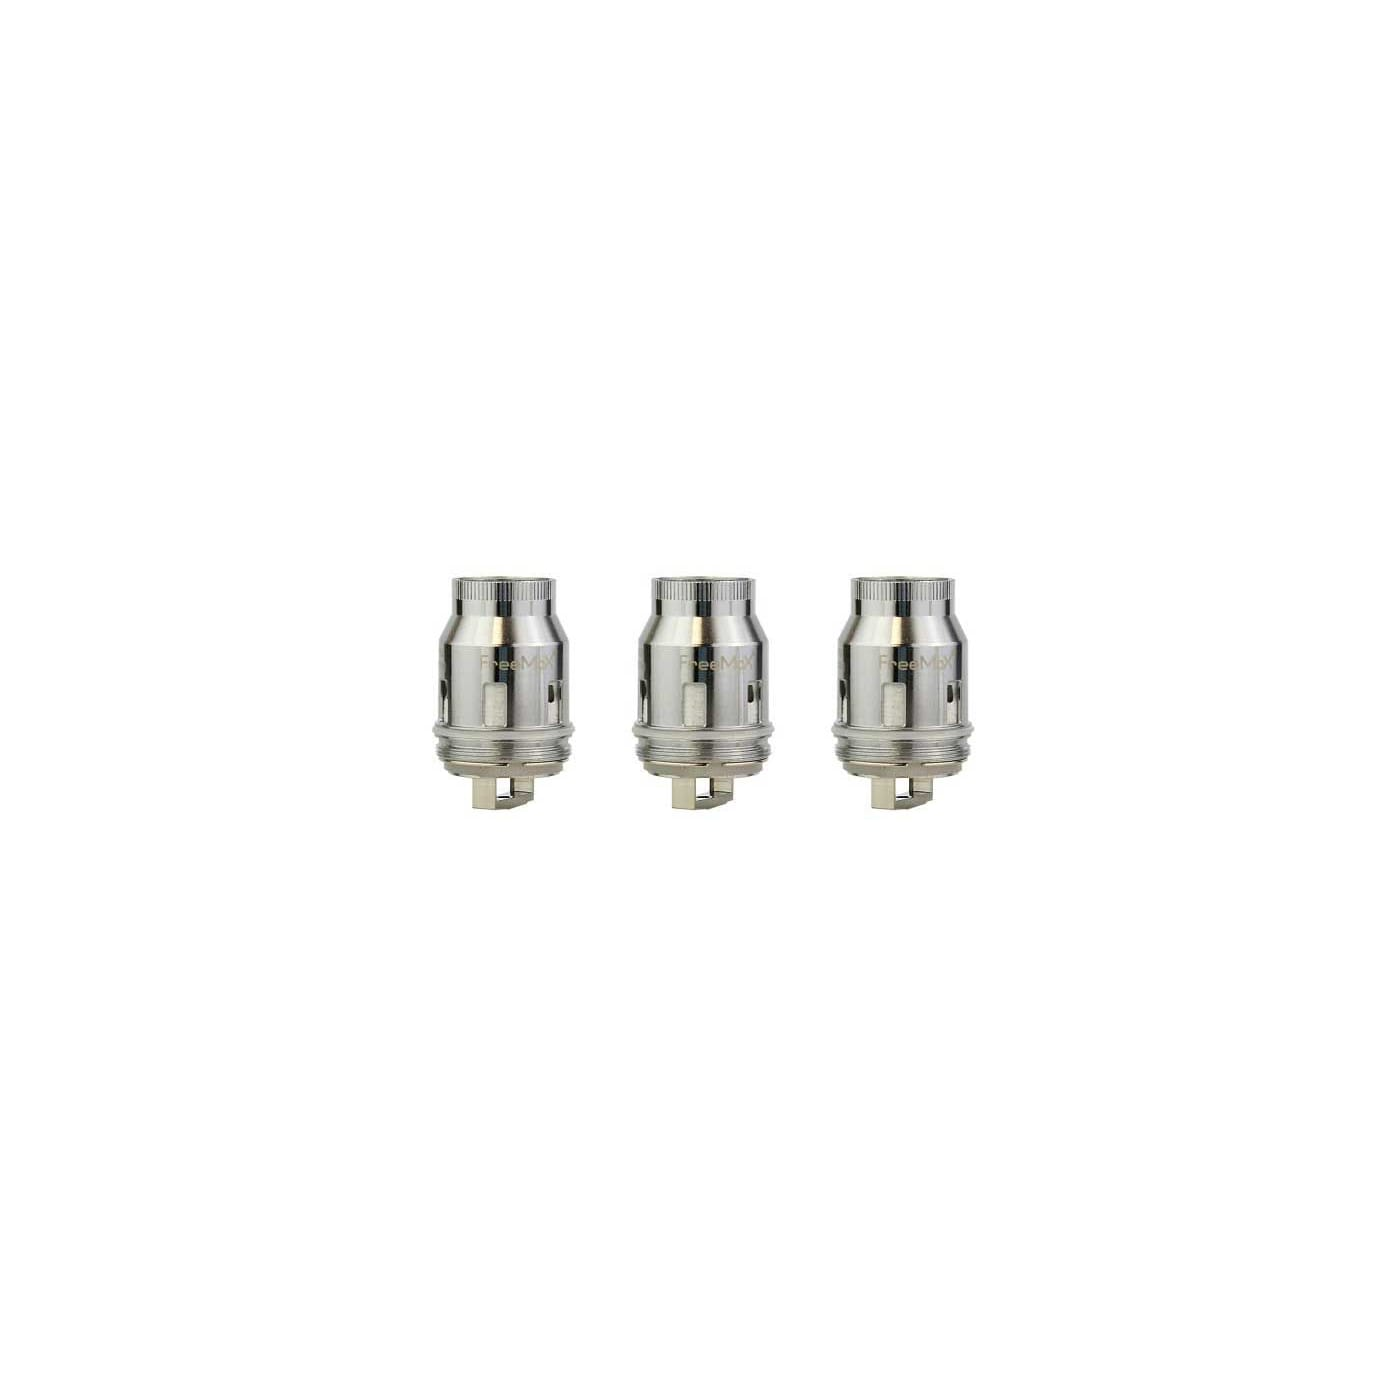 Freemax Kanthal Quintuple Mesh Replacement Coil - 3 pack